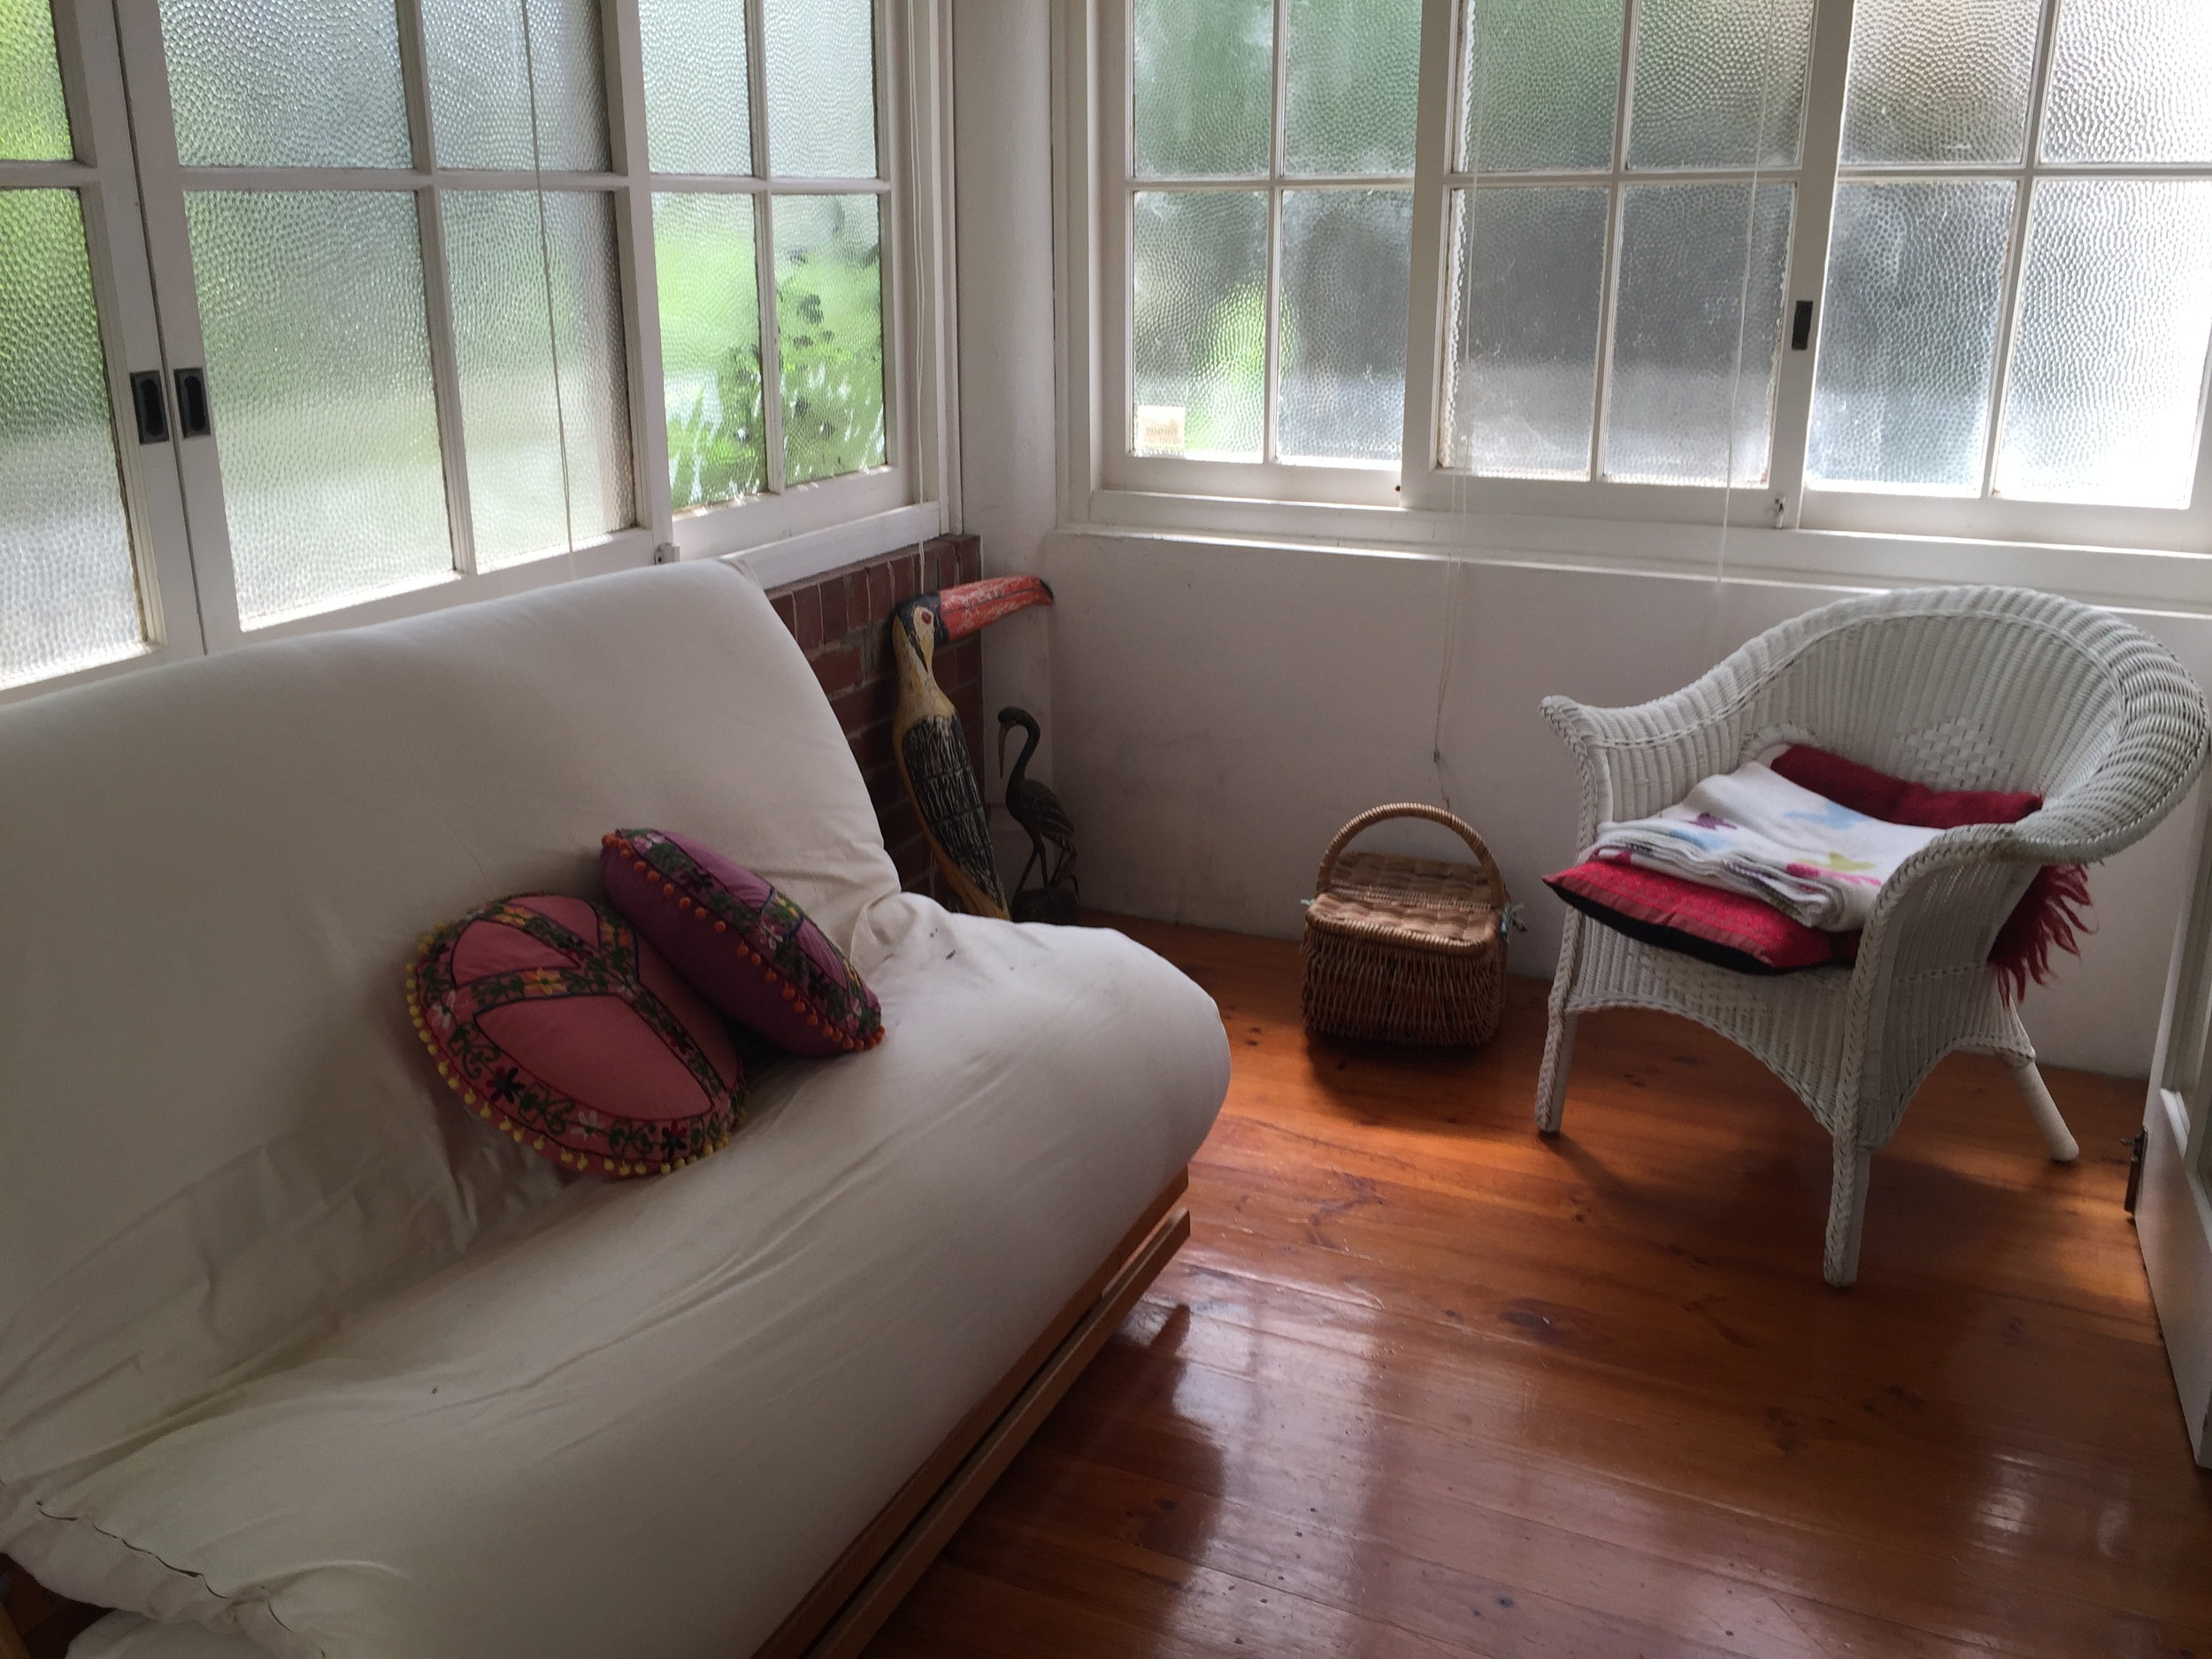 sunroom b.jpg